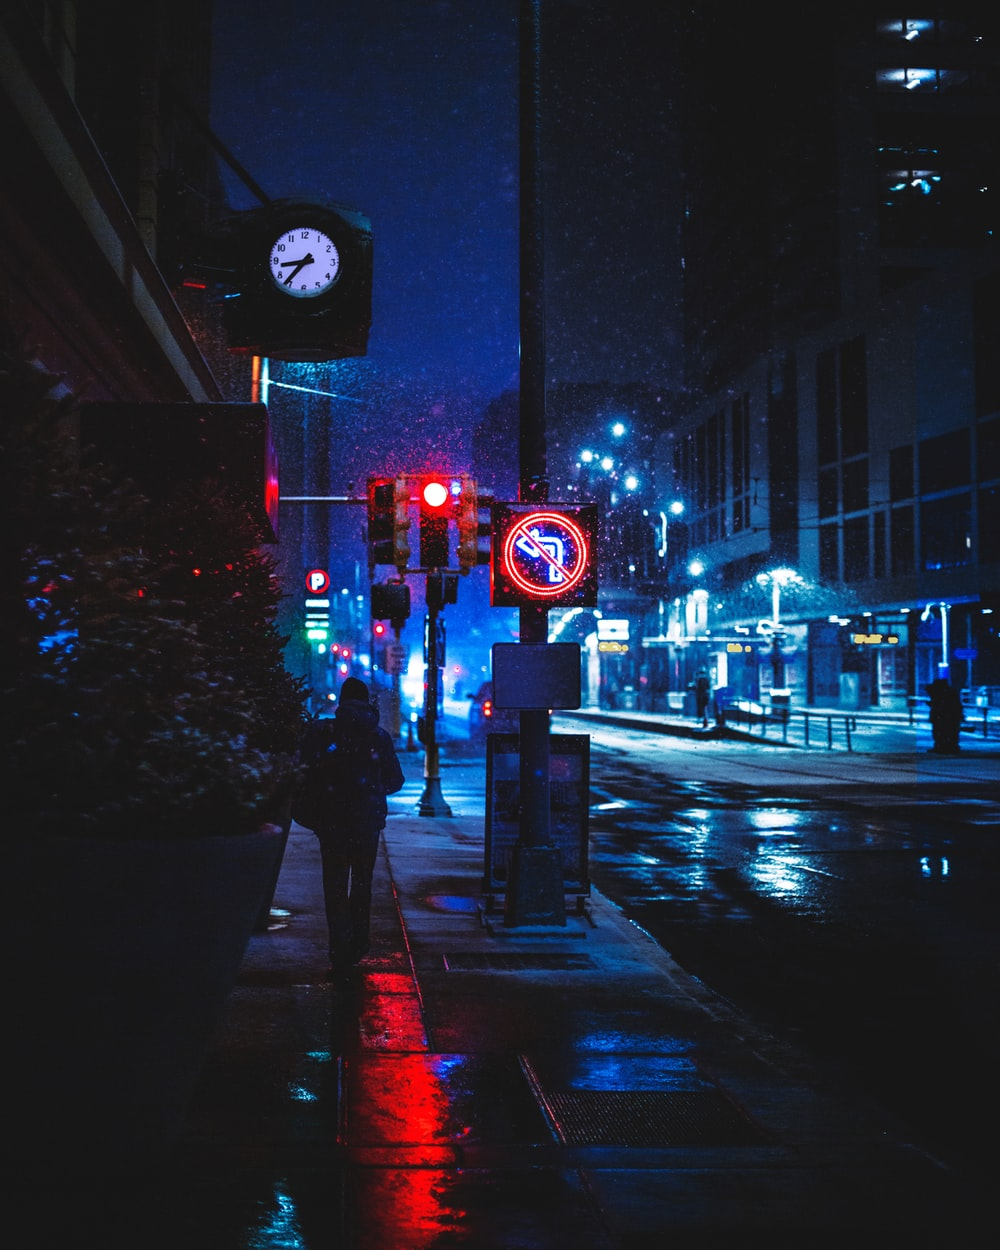 red and white traffic light on the street during night time